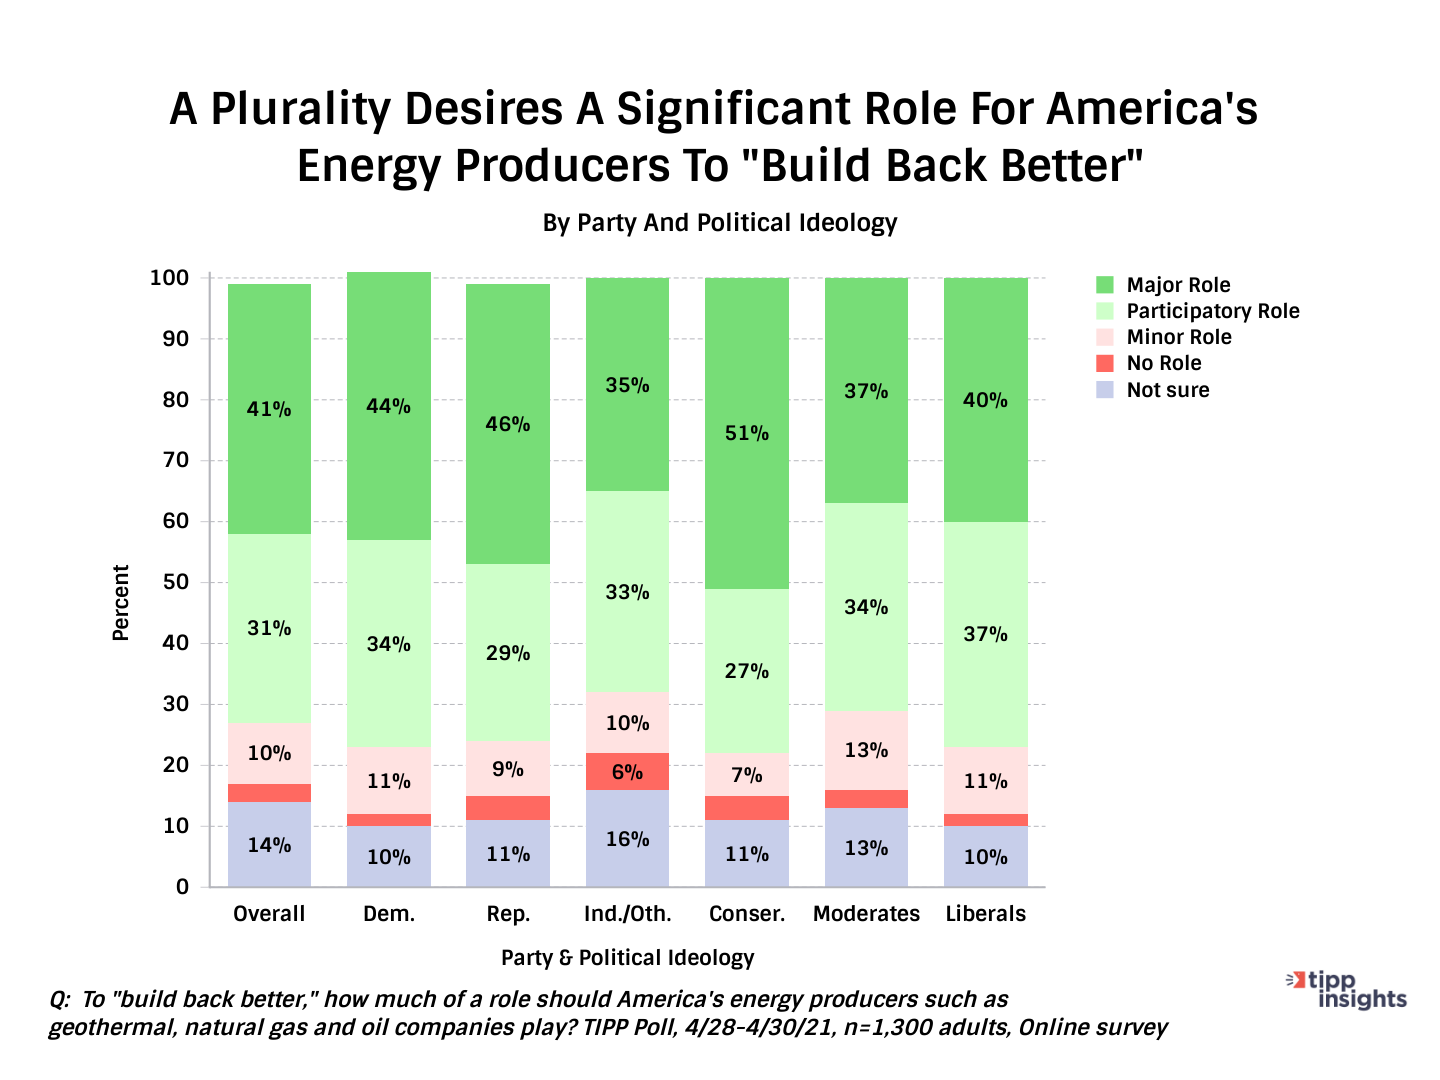 Tipp Poll Results, American's Want Significant Roll For Energy Producers - Chart